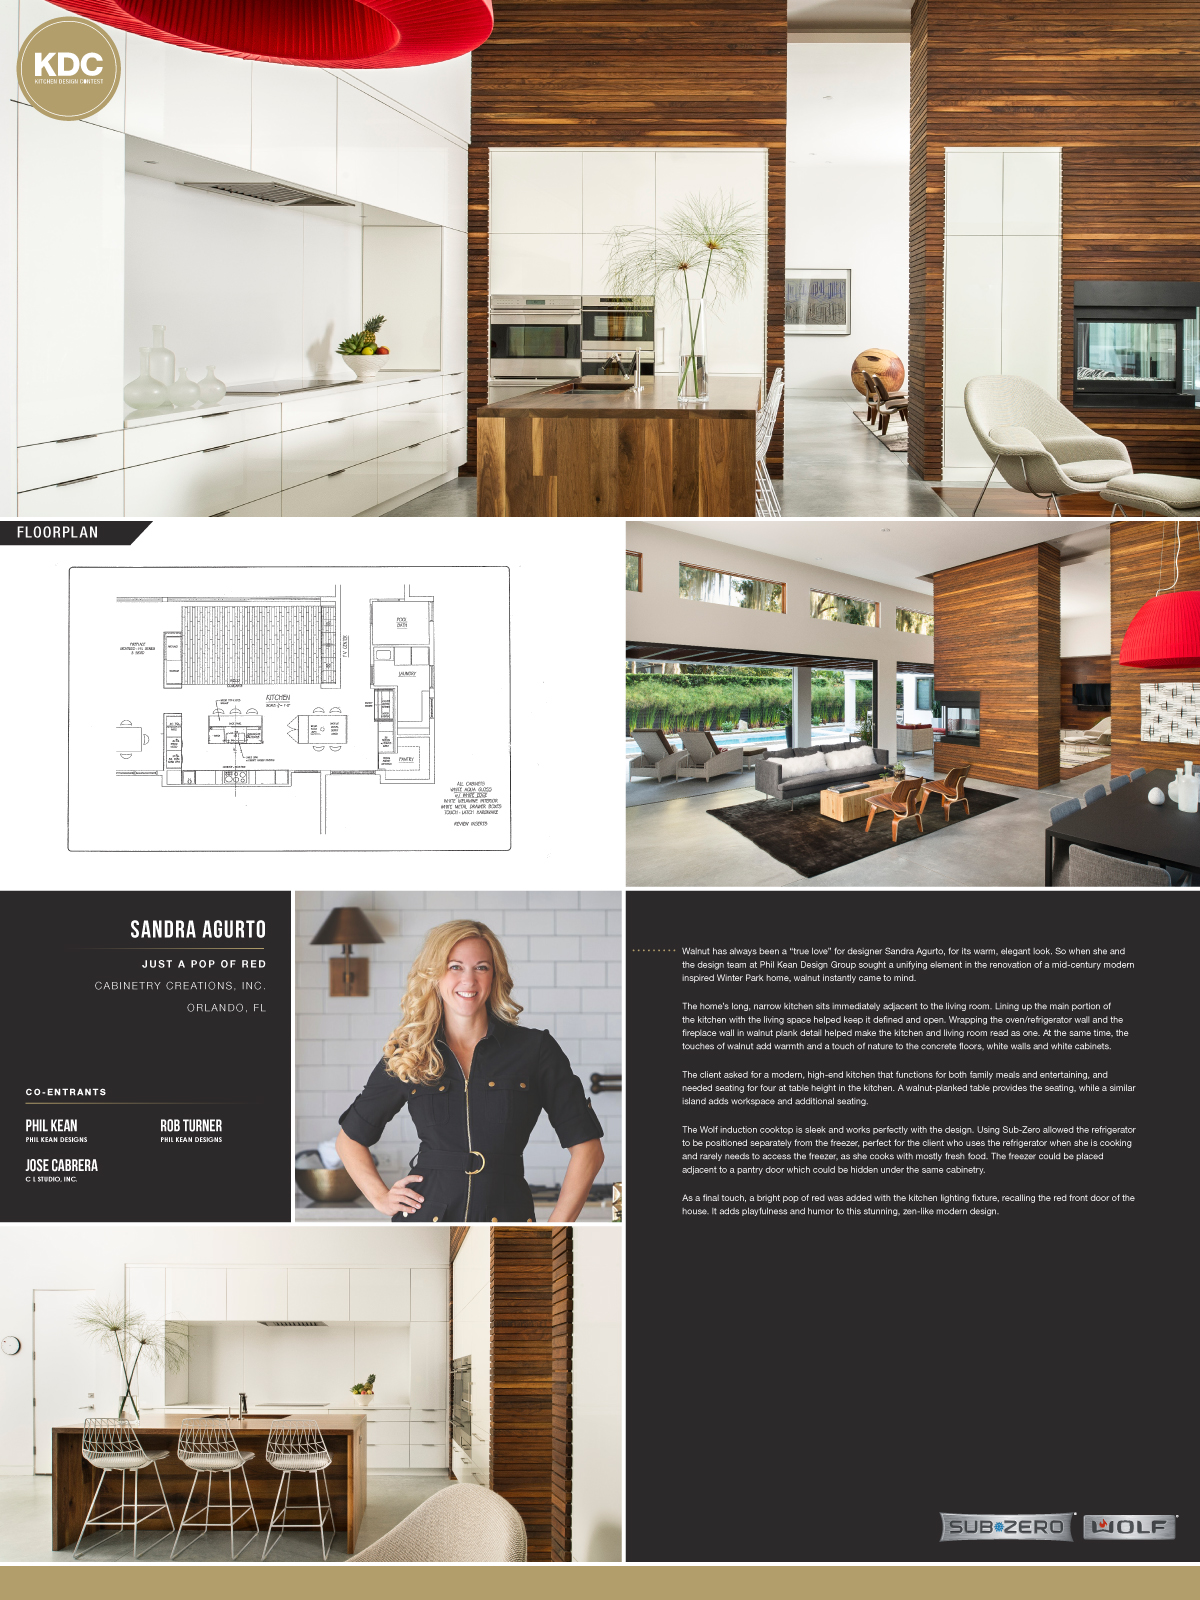 Sub Zero Amp Wolf Kitchen Design Contest Life Of An Architect